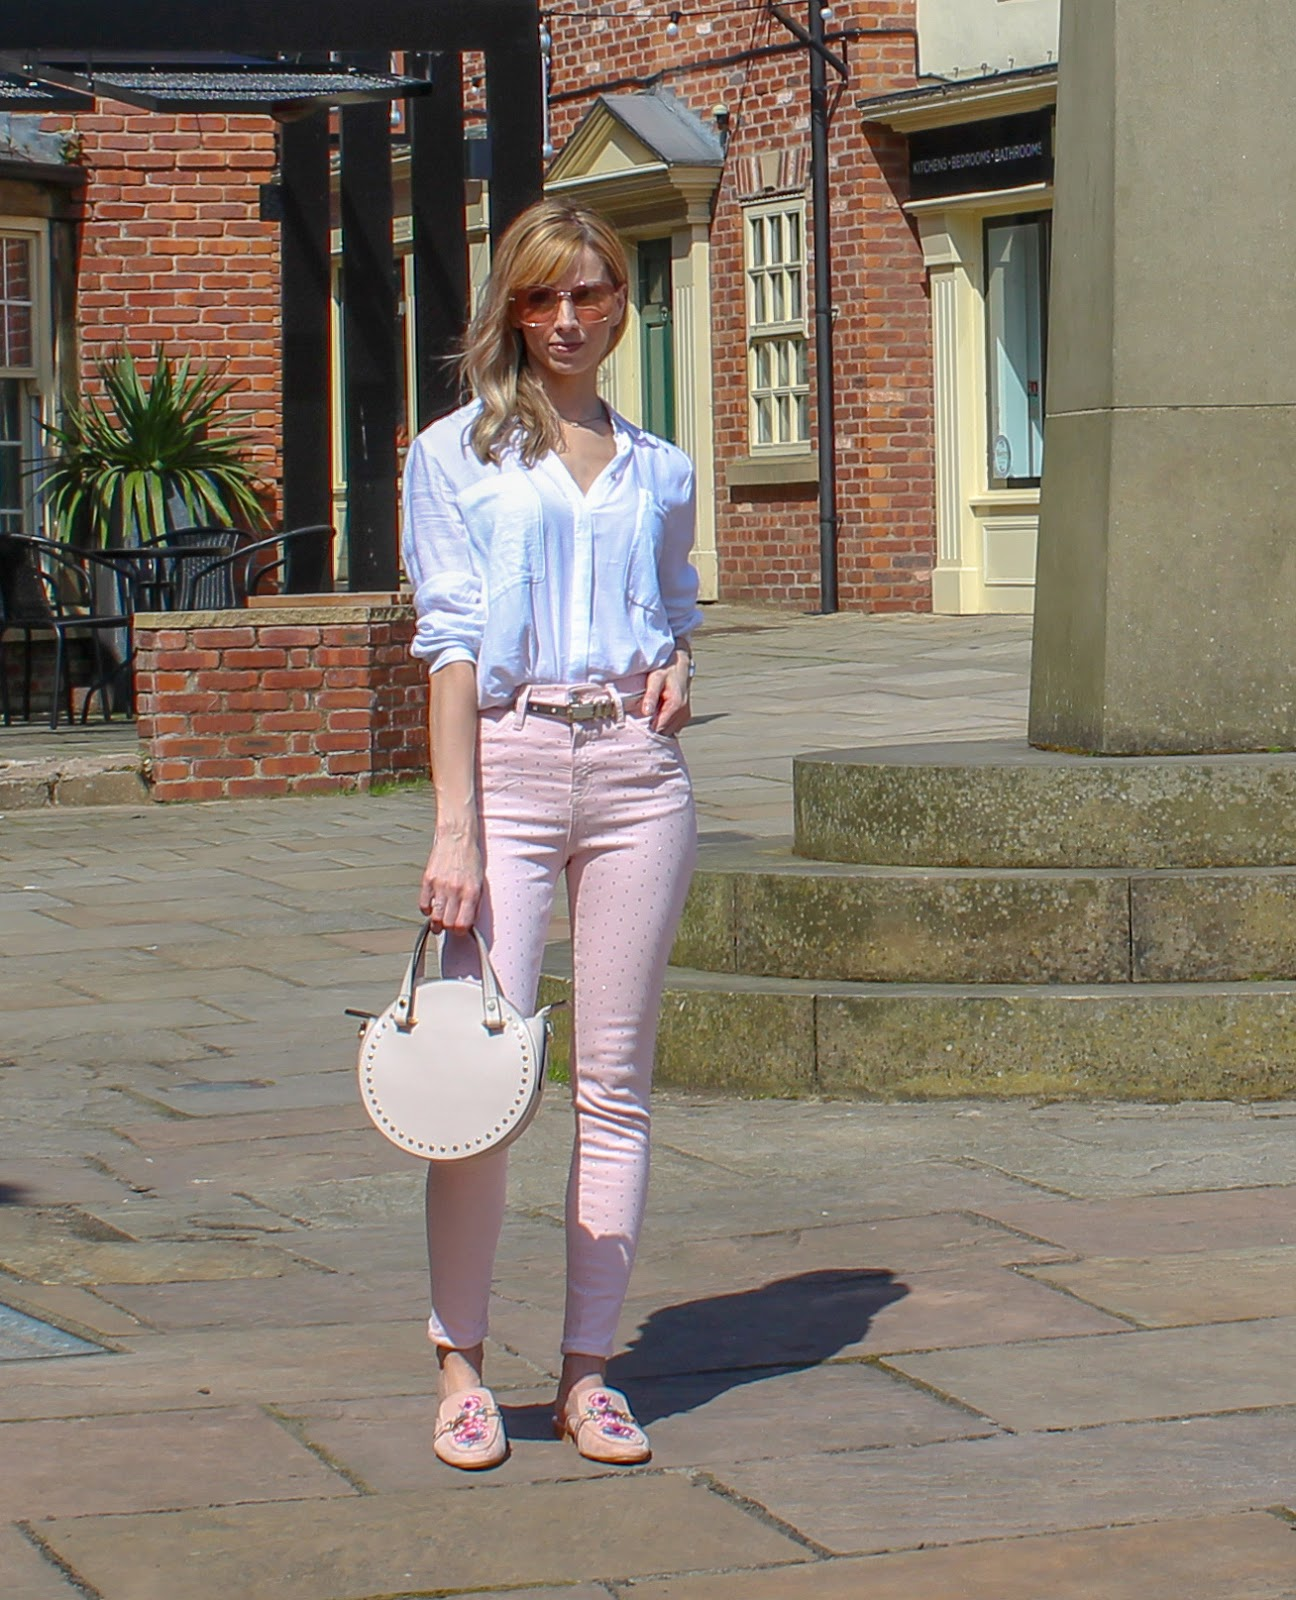 How To Wear Coloured Jeans - 3